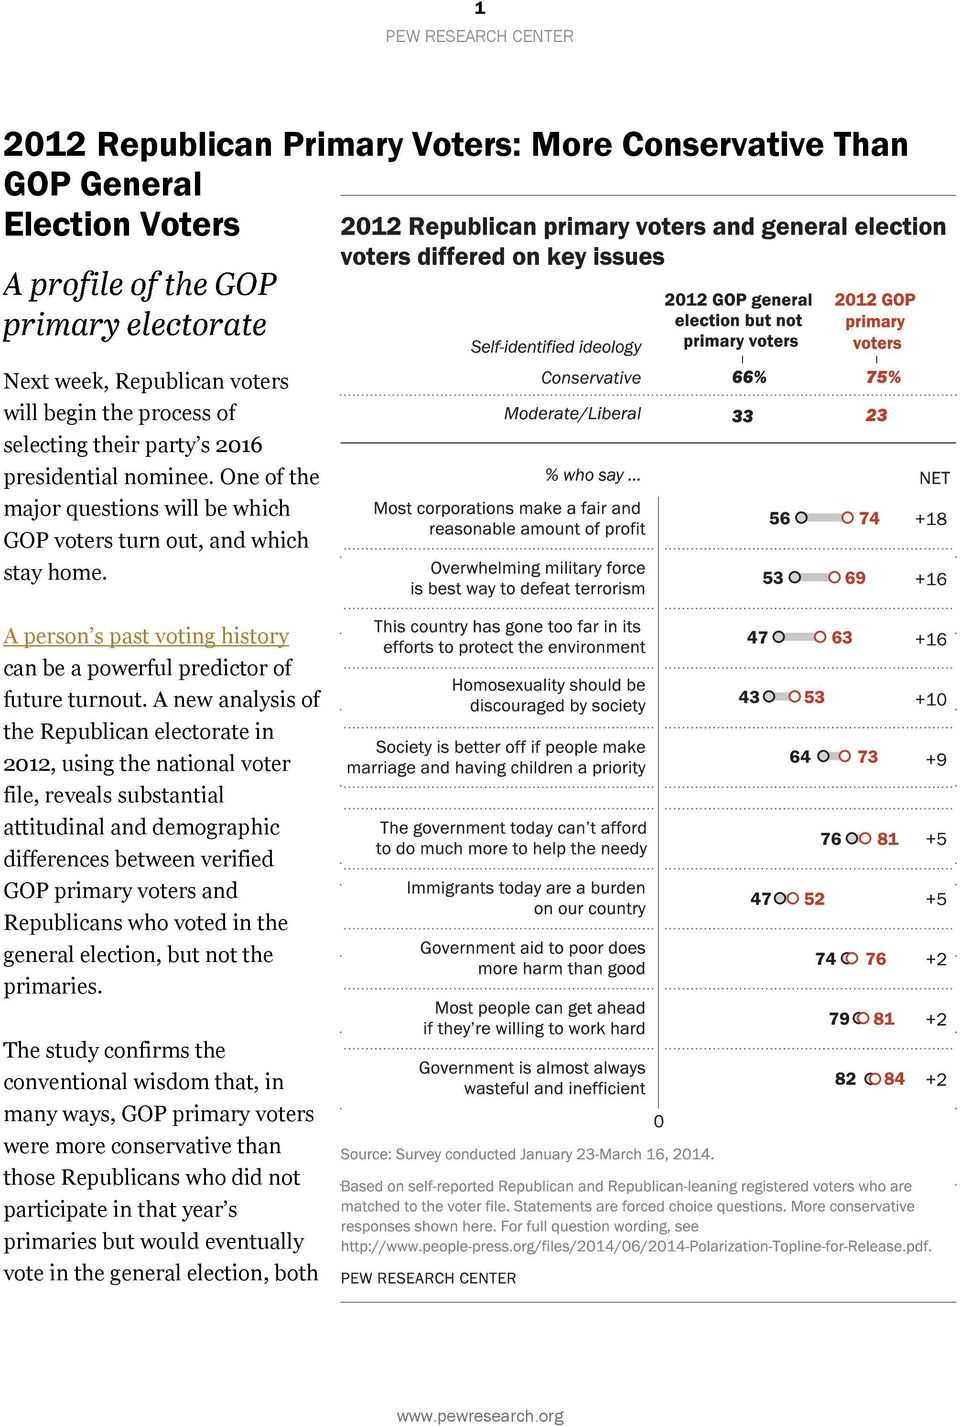 A new analysis of the Republican electorate in 2012, using the national voter file, reveals substantial attitudinal and demographic differences between verified GOP primary and Republicans who voted